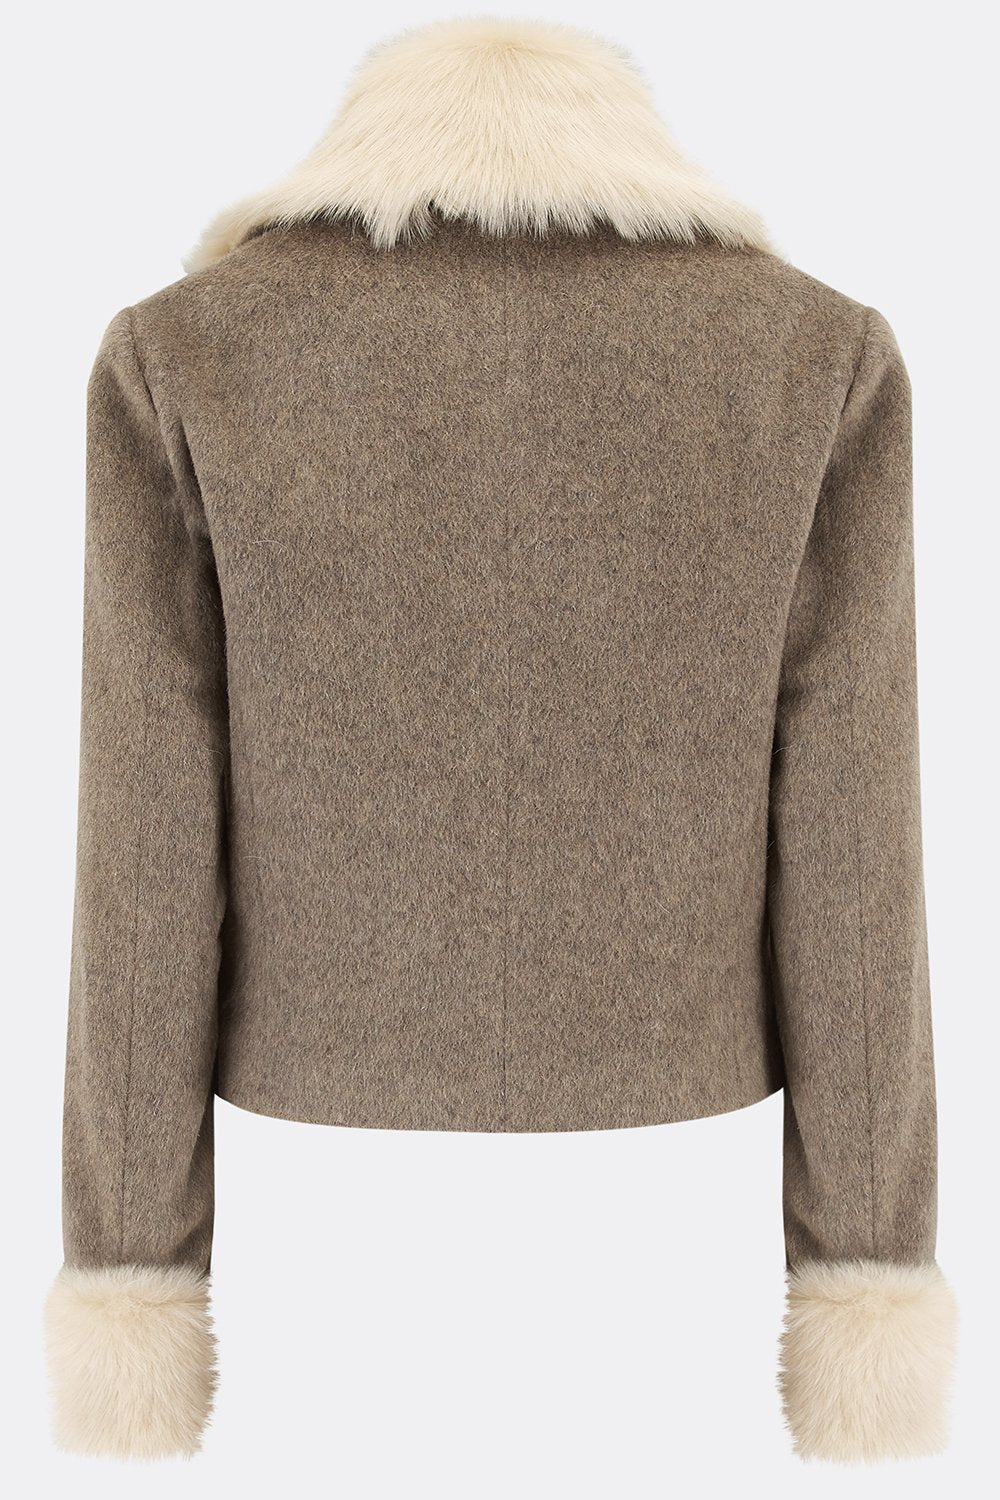 MAE JACKET IN BEIGE ALPACA-womenswear-A Child Of The Jago